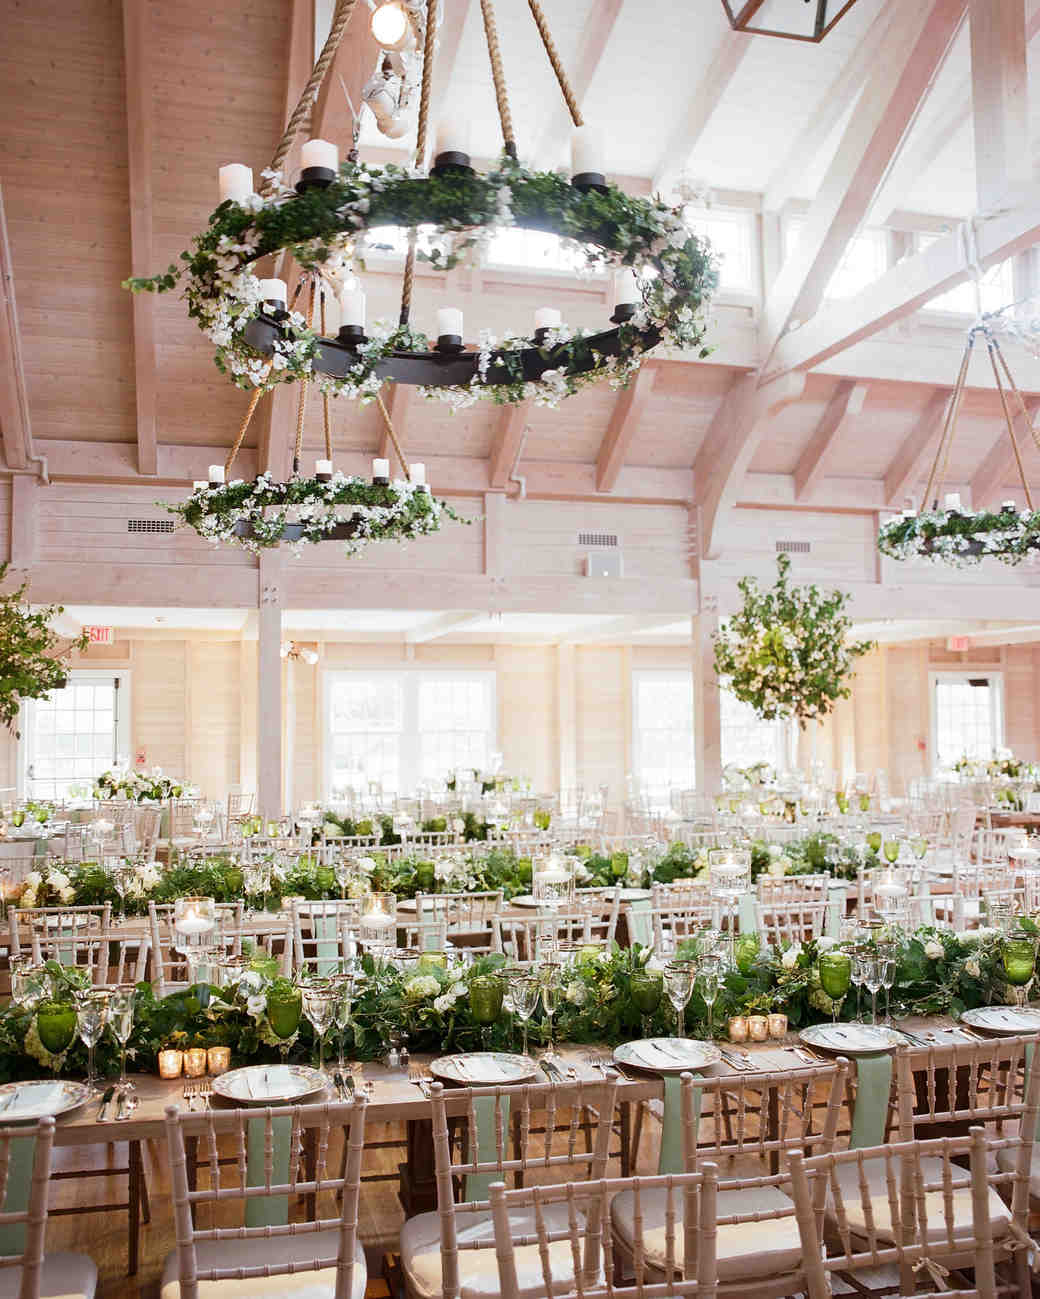 wedding chandelier iron with greenery hung with rope